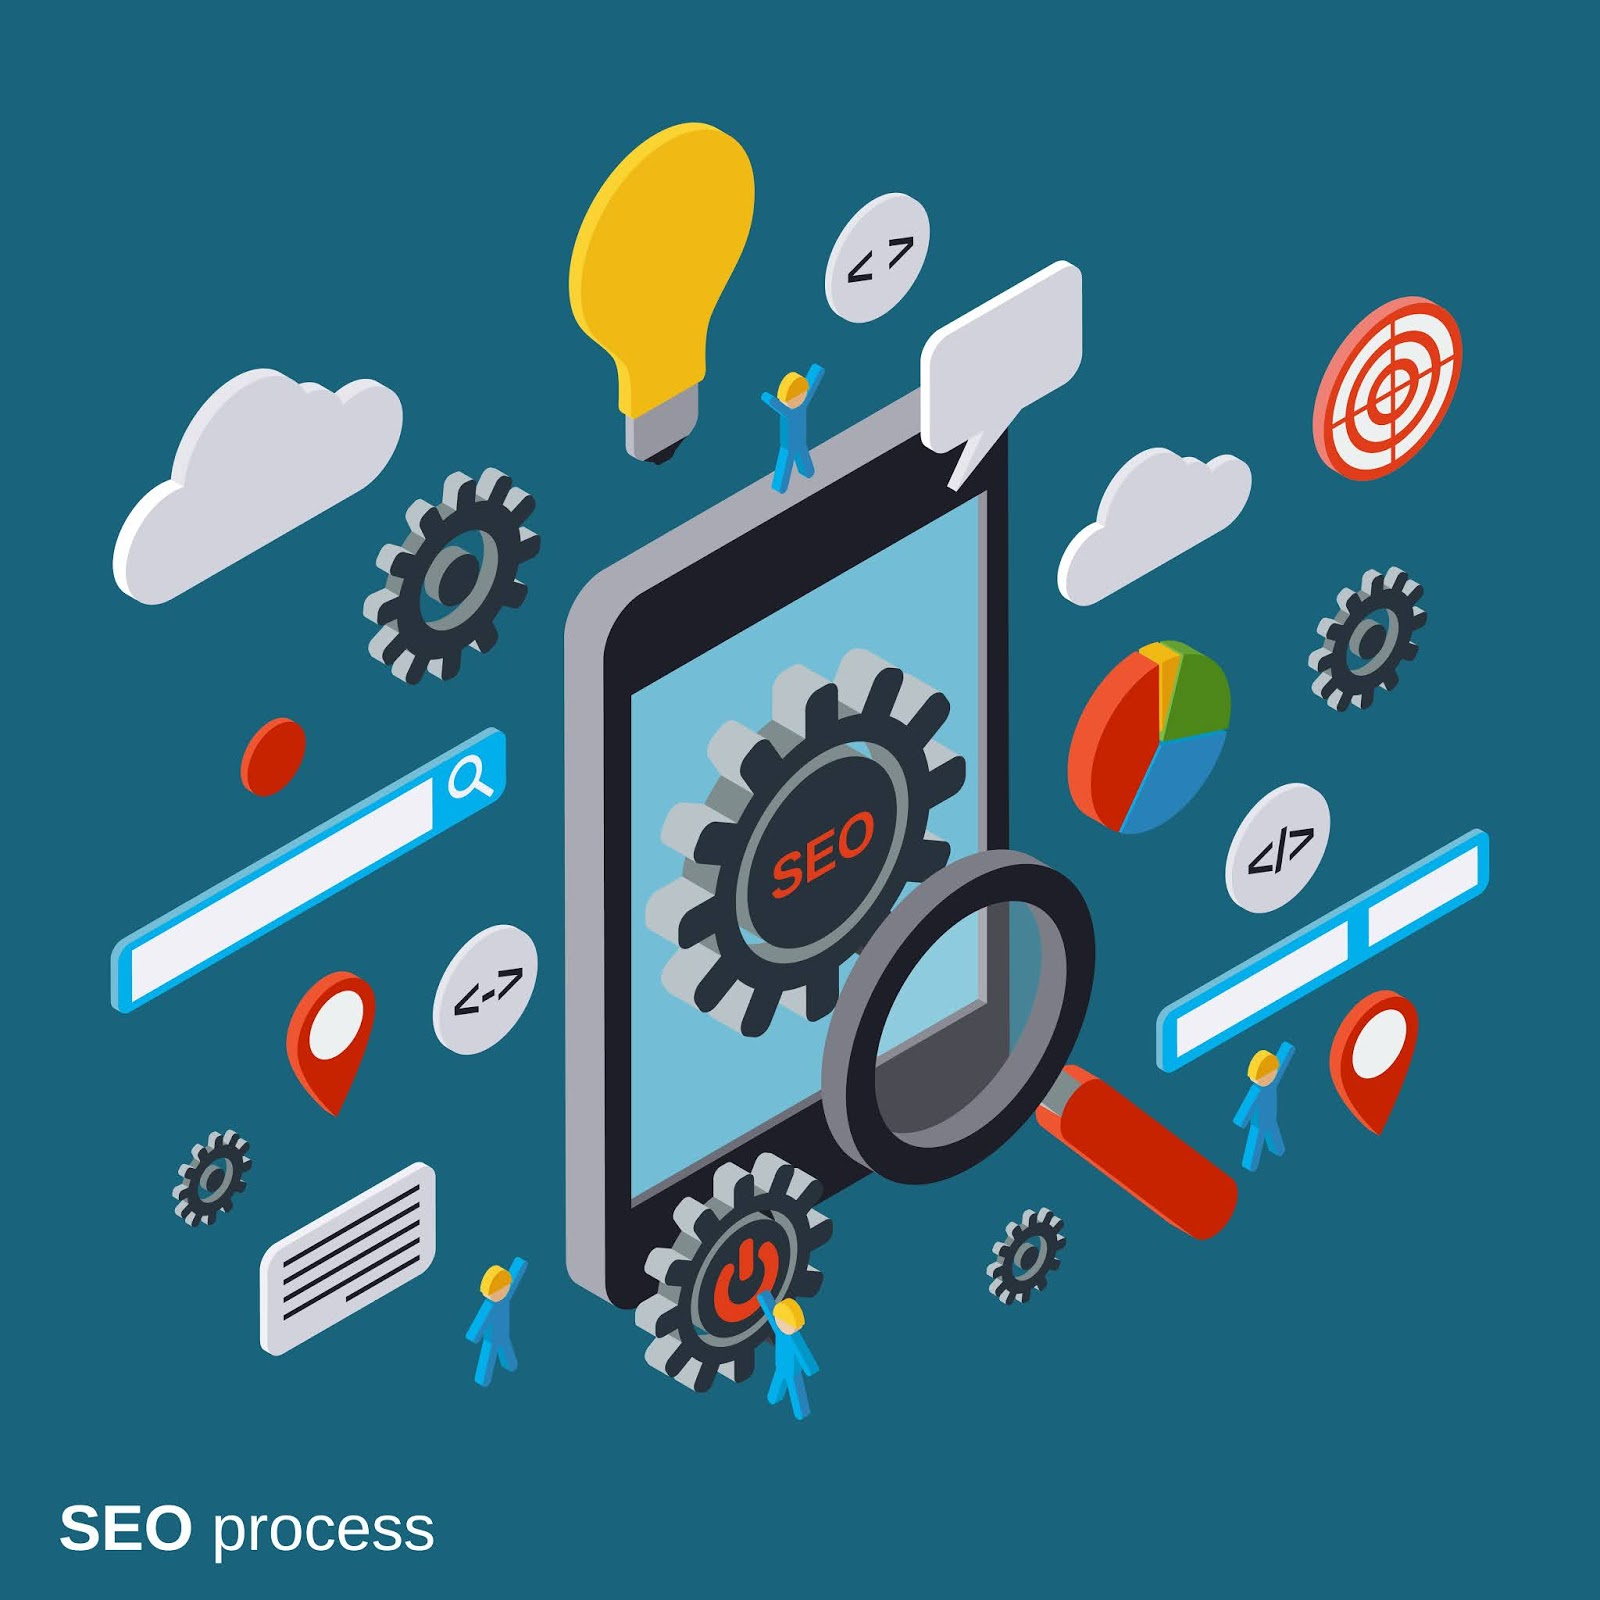 Mobile Seo Optimization Vector Concept Free Download Vector CDR, AI, EPS and PNG Formats